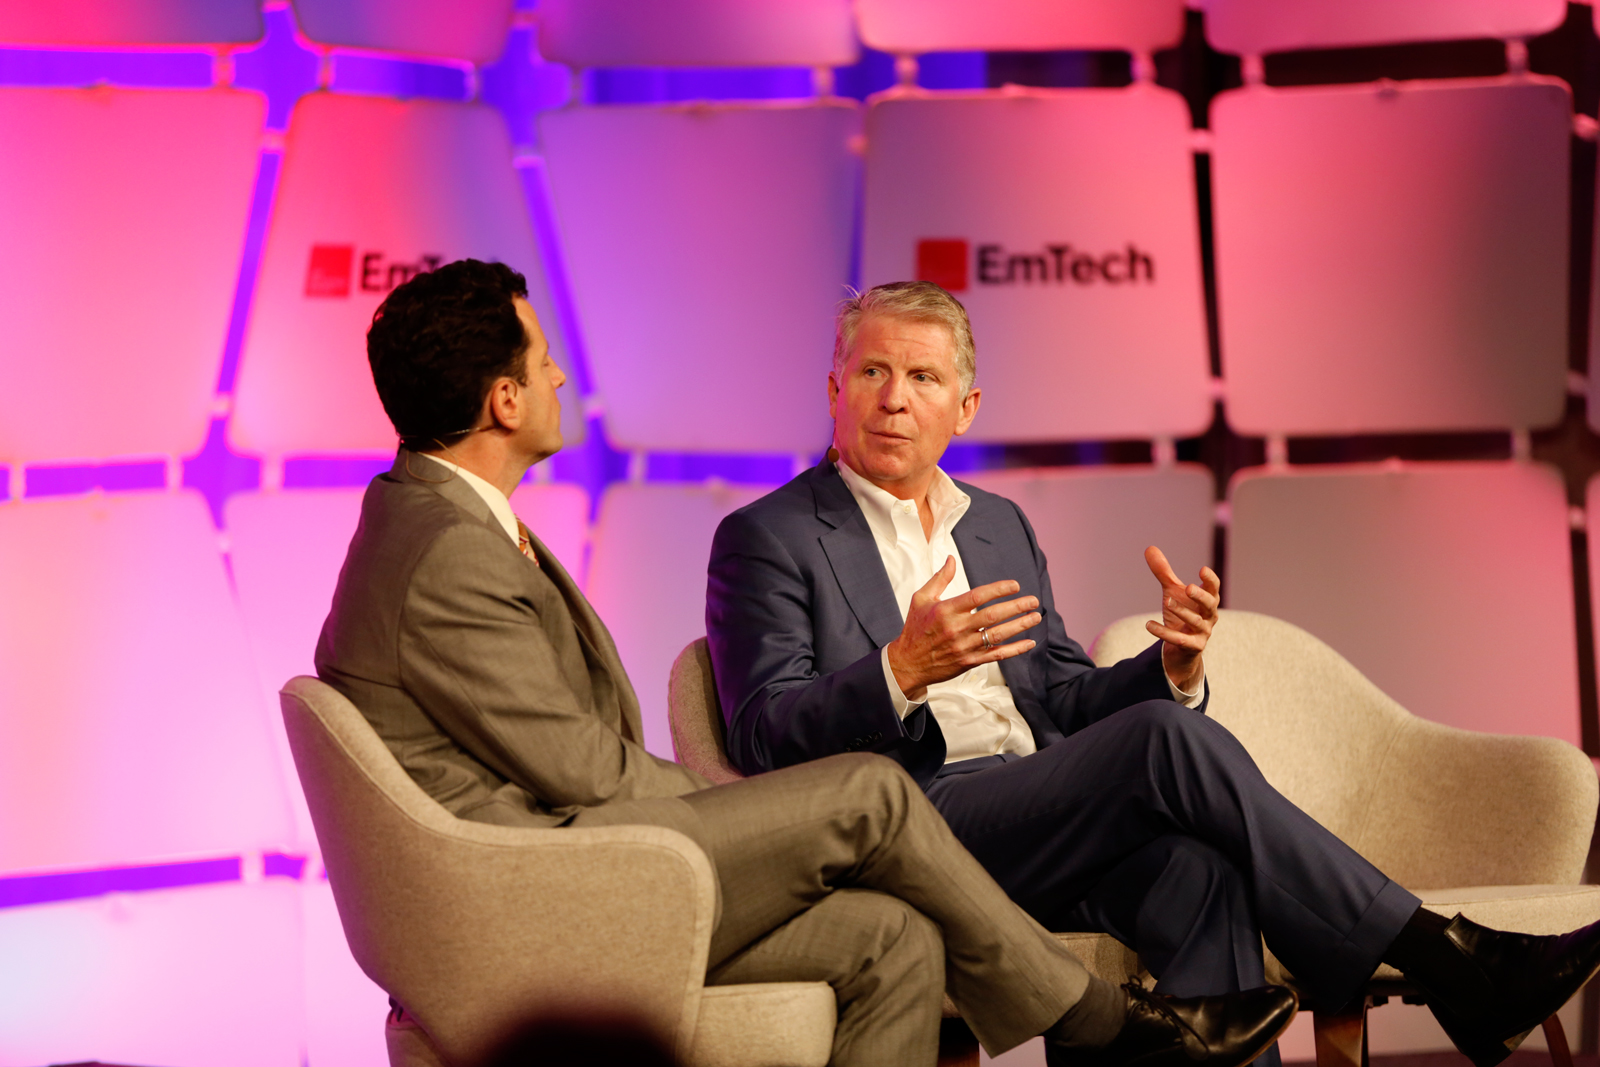 Brian Bergstein and Cyrus Vance Jr. on stage at EmTech MIT 2016.